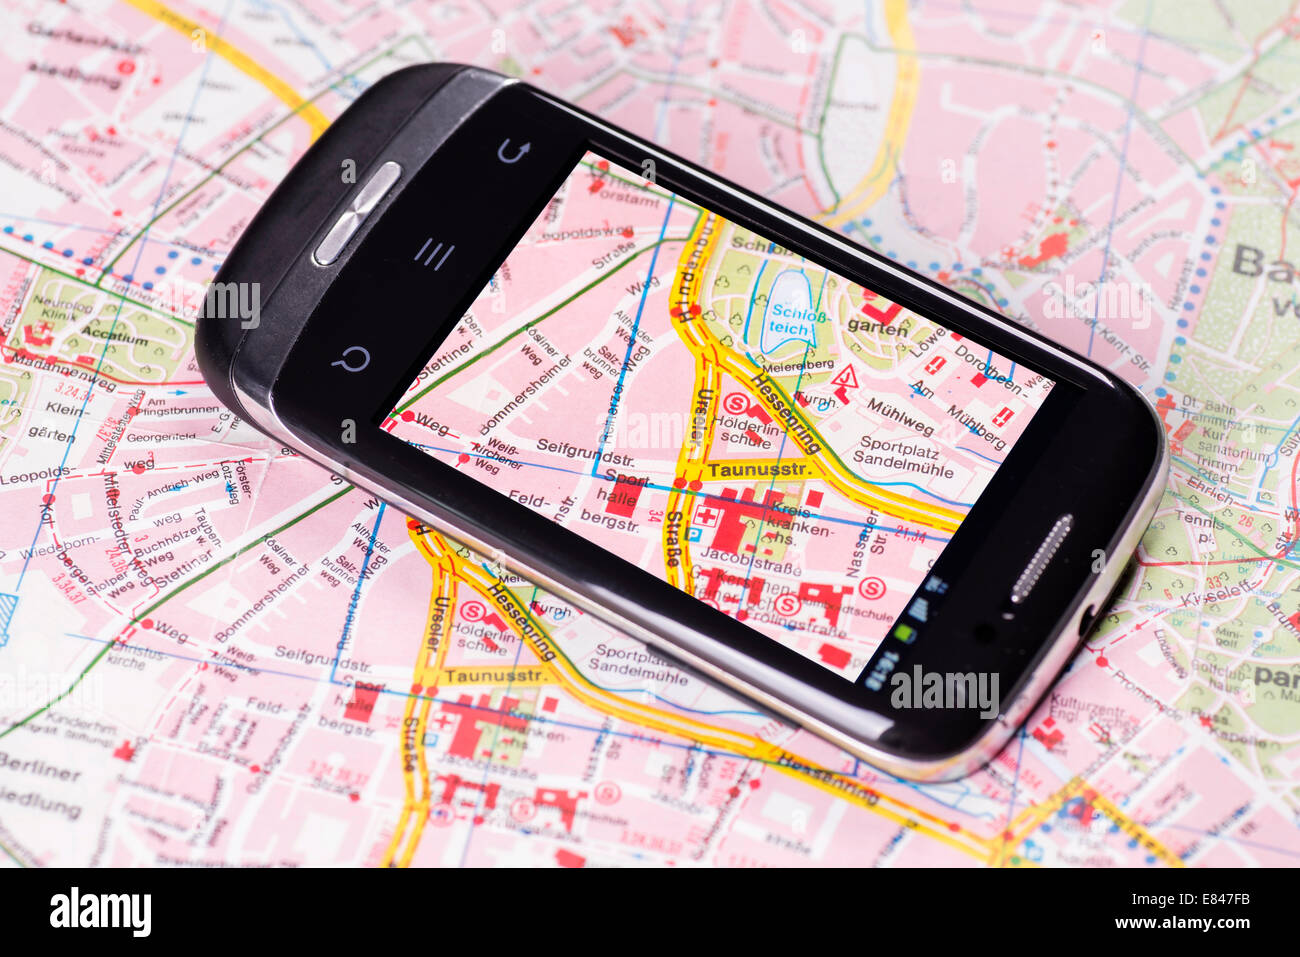 Smart phone  with map view is located on a printed map. - Stock Image